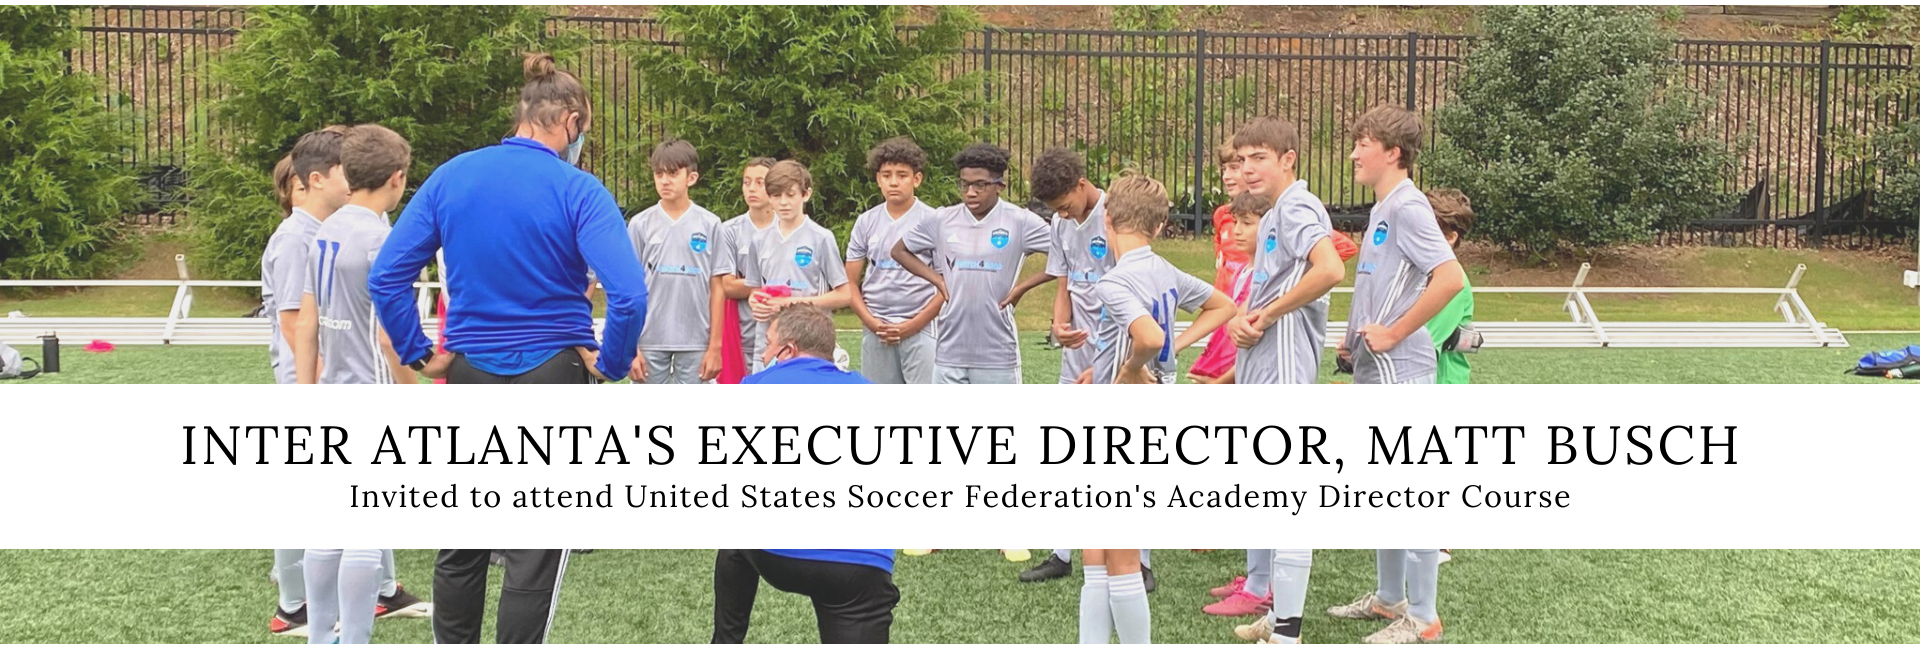 Matt Busch Invited to Academy Director Course